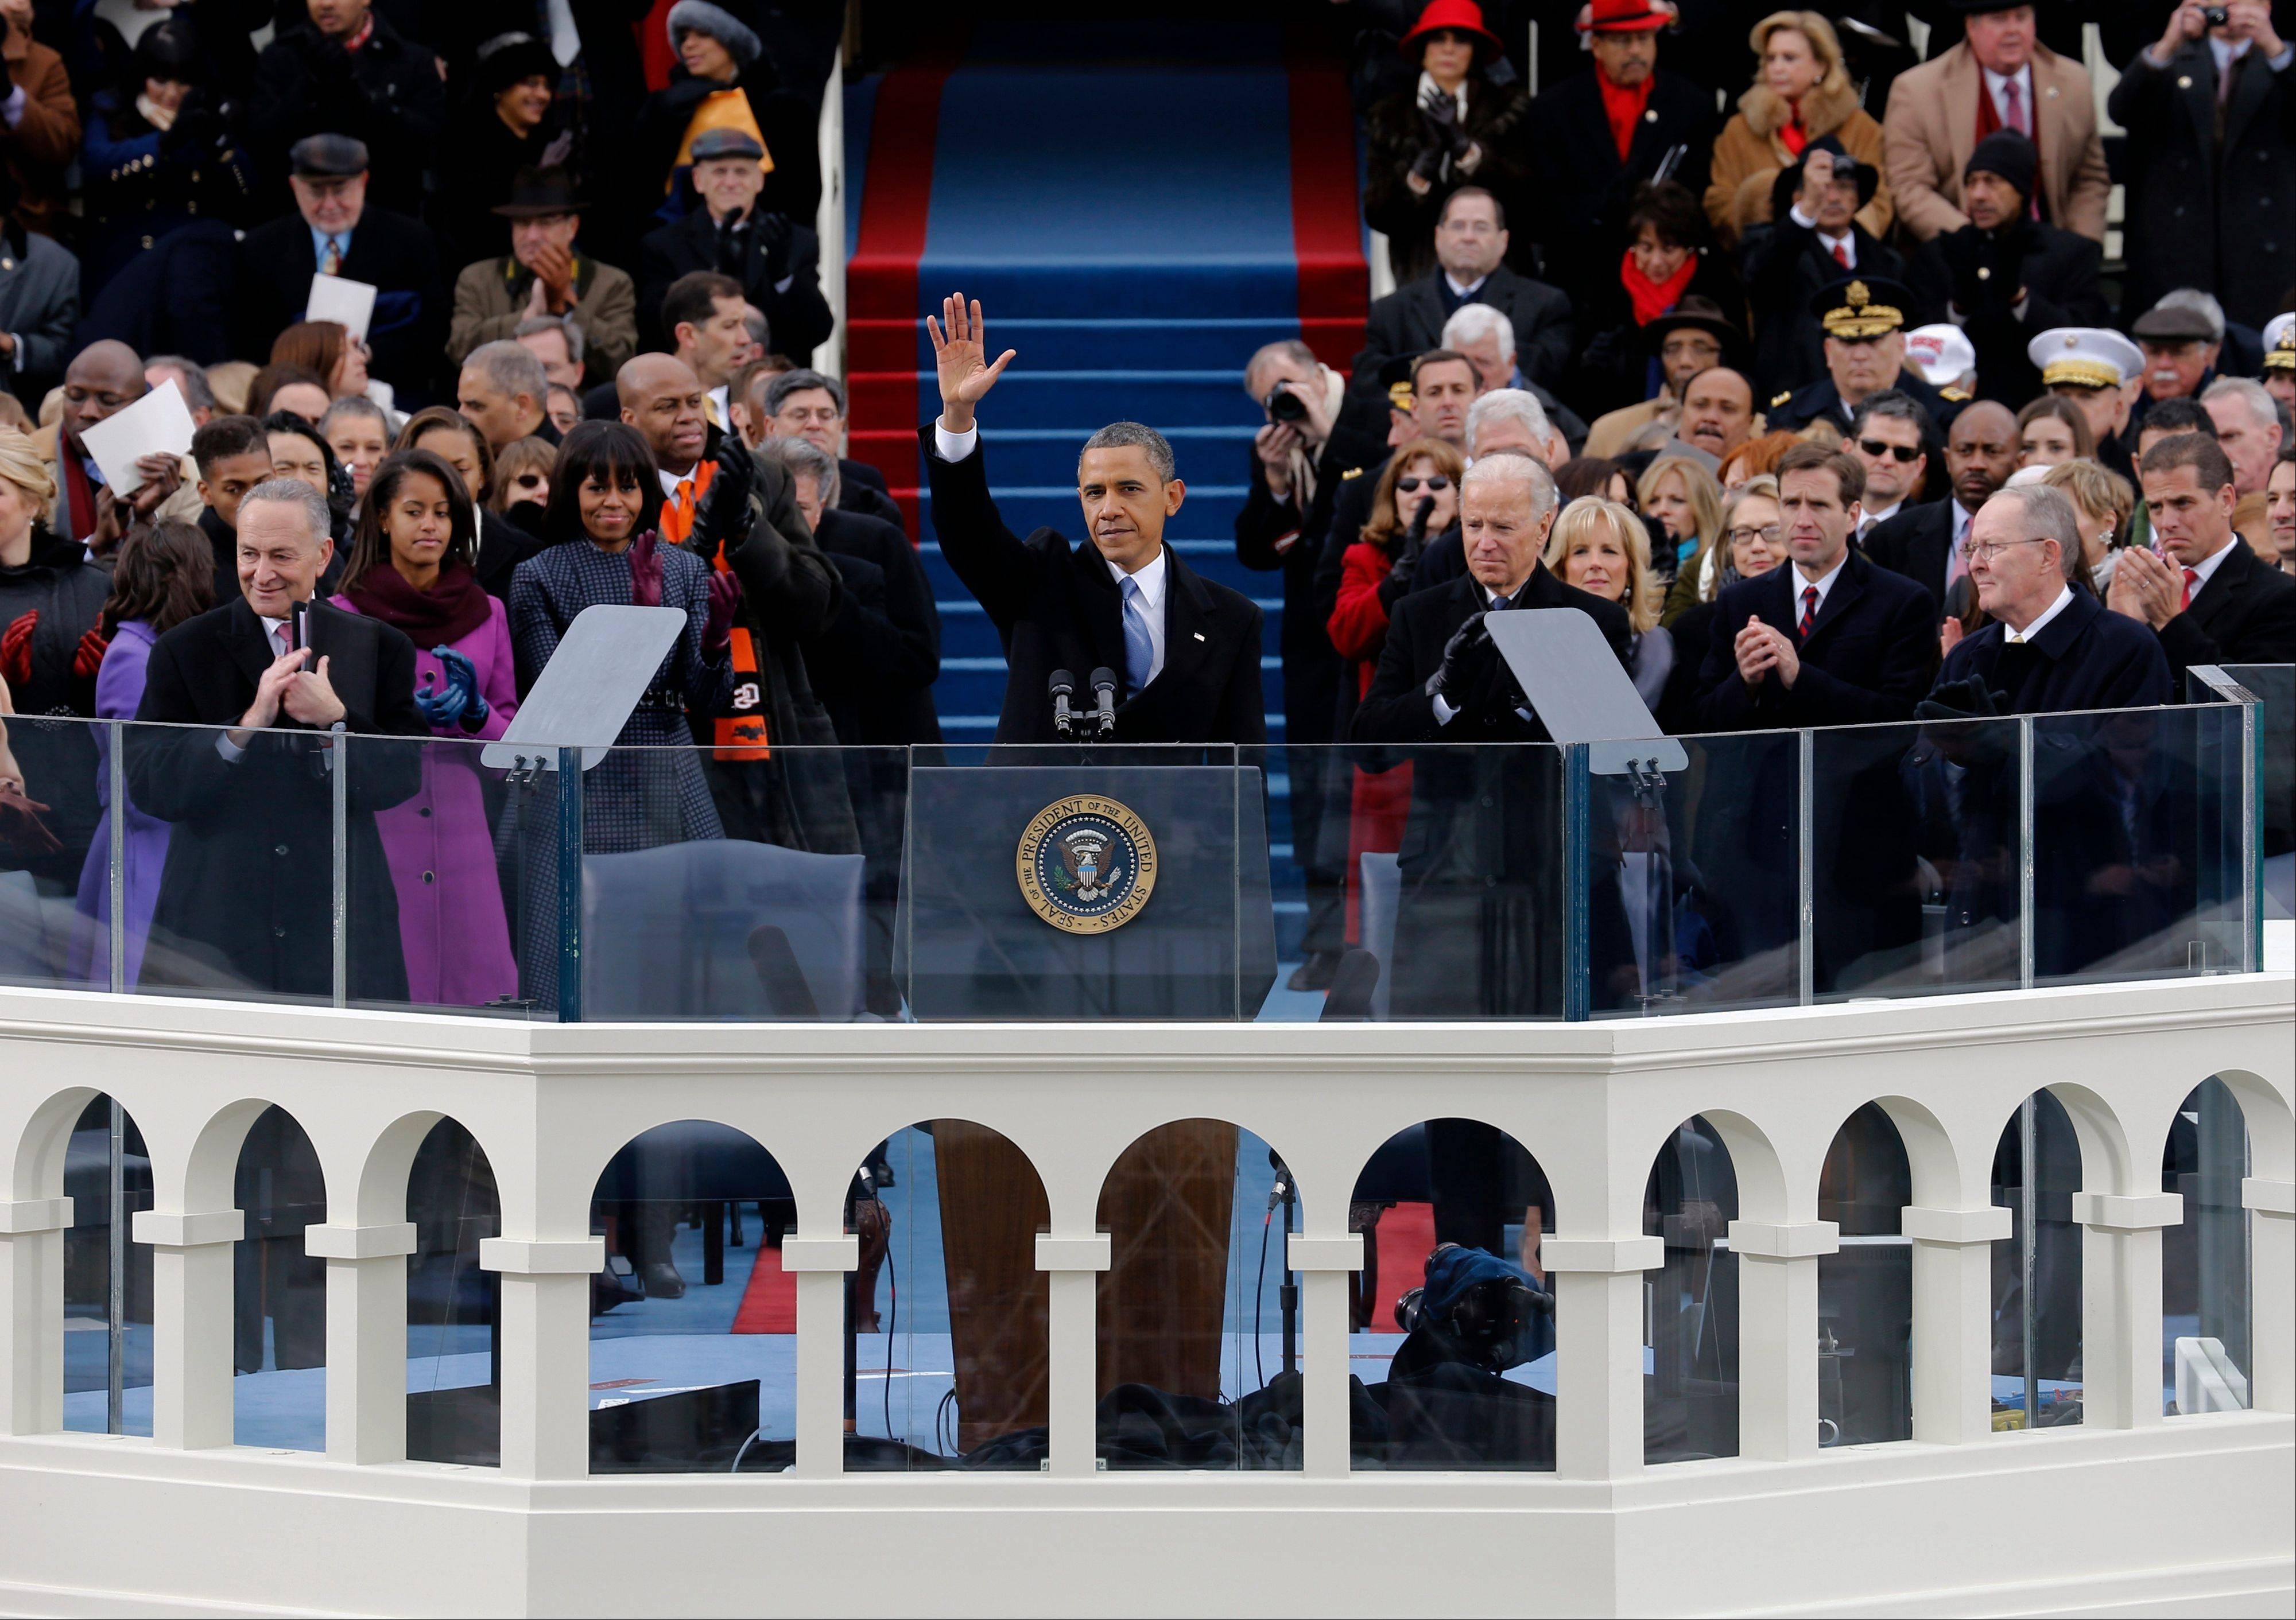 President Barack Obama waves to crowd after his Inaugural speech at the ceremonial swearing-in on the West Front of the U.S. Capitol during the 57th Presidential Inauguration in Washington, Monday.